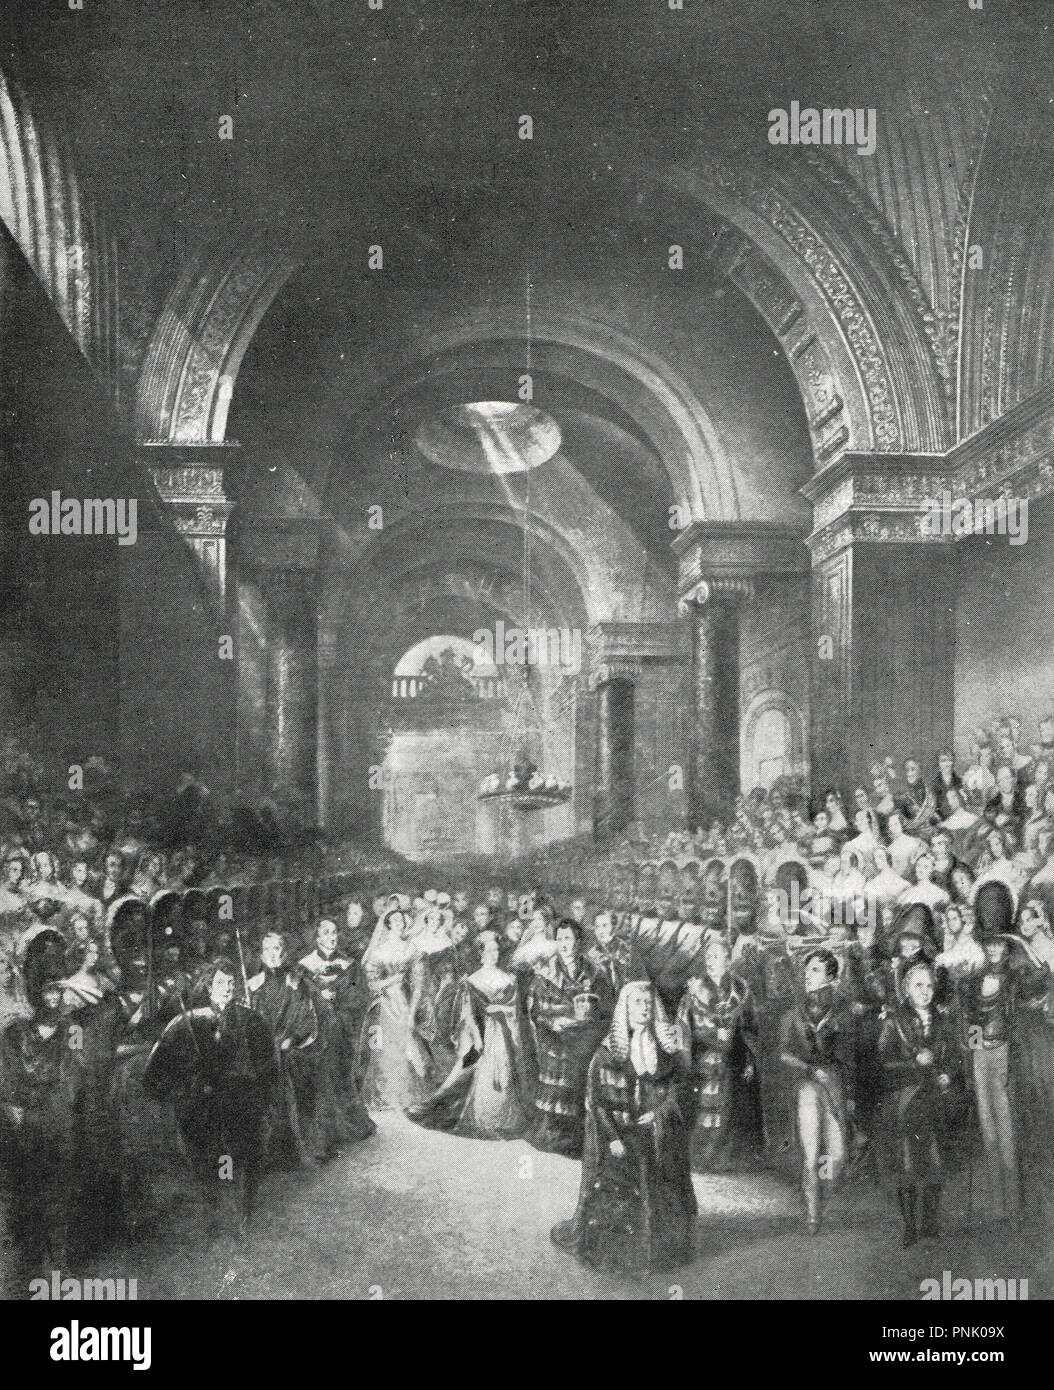 Queen Victoria visiting the old house of Lords shortly after her accession to dissolve parliament in 1837 - Stock Image